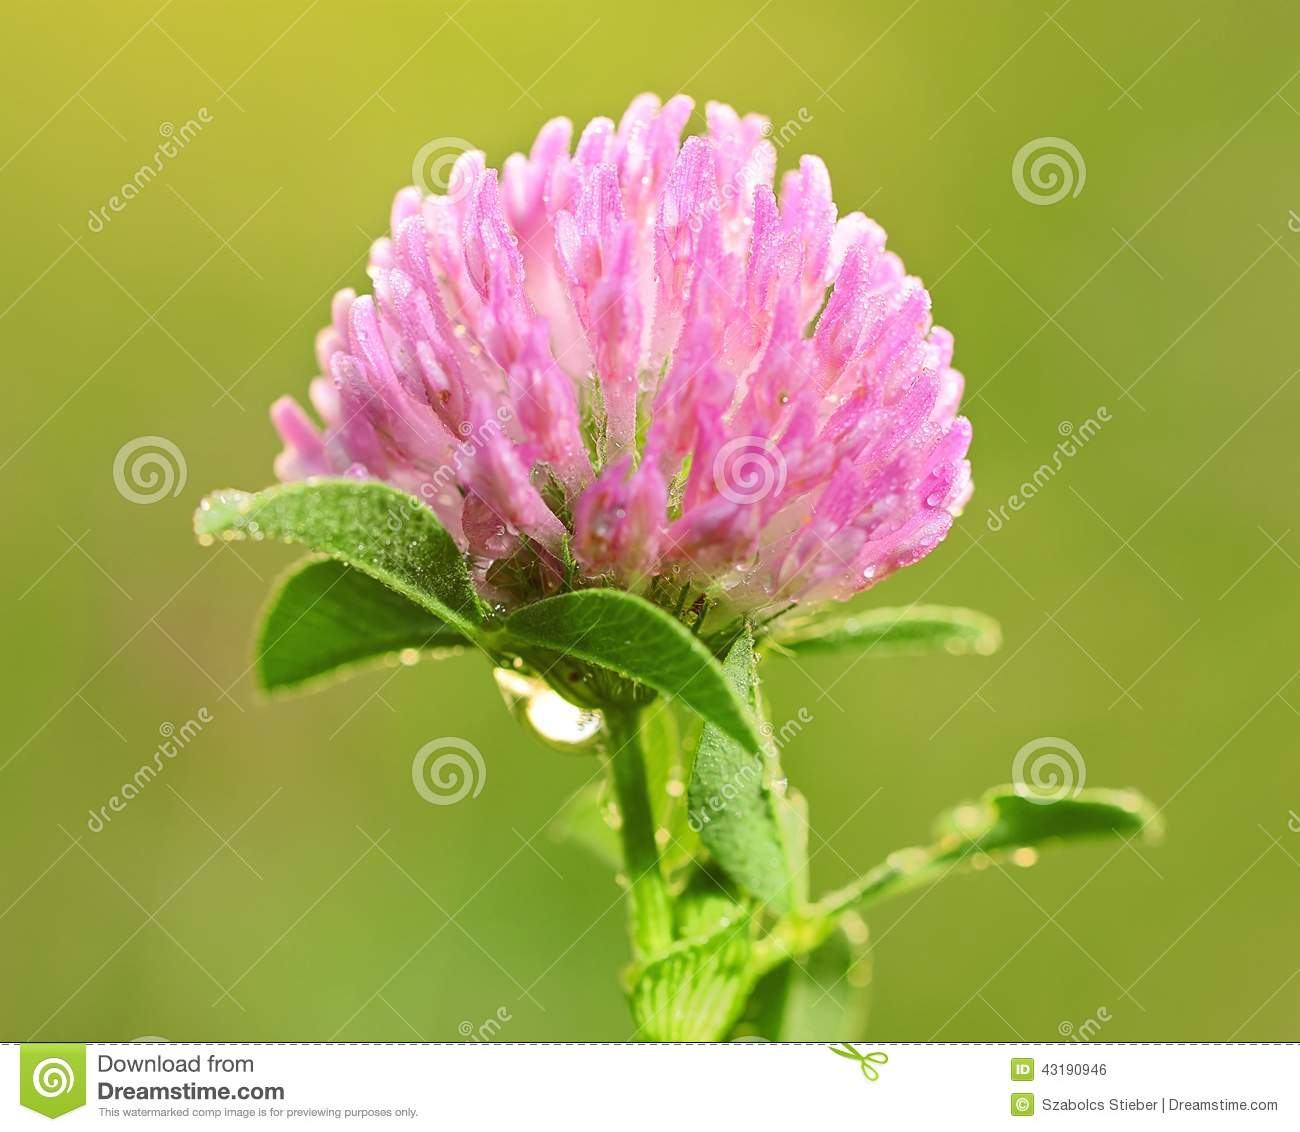 Closeup photo of a clover flower with